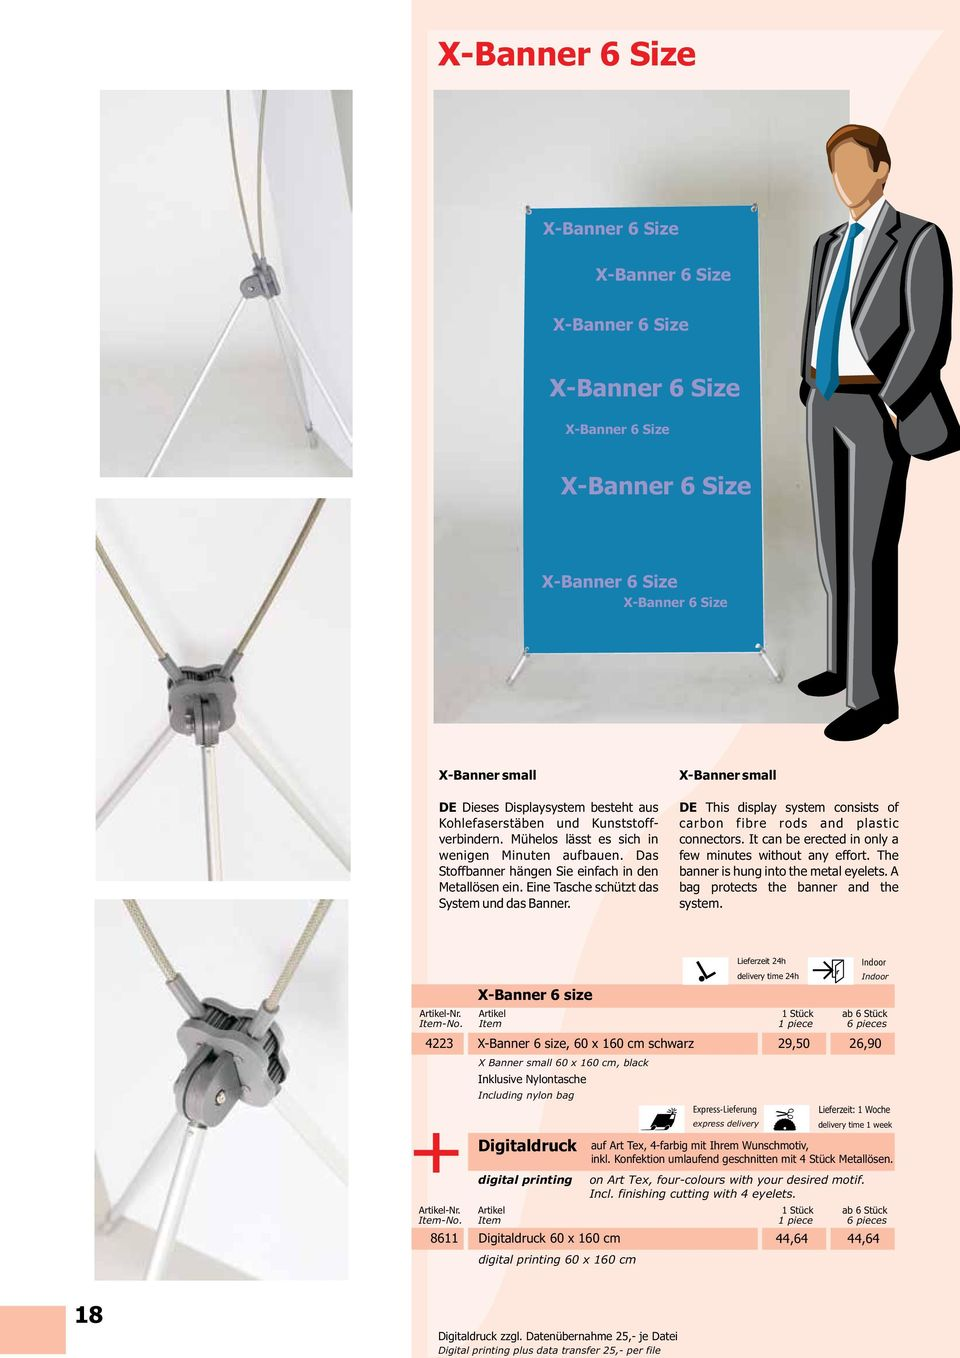 X-Banner small DE This display system consists of carbon fibre rods and plastic connectors. It can be erected in only a few minutes without any effort. The banner is hung into the metal eyelets.